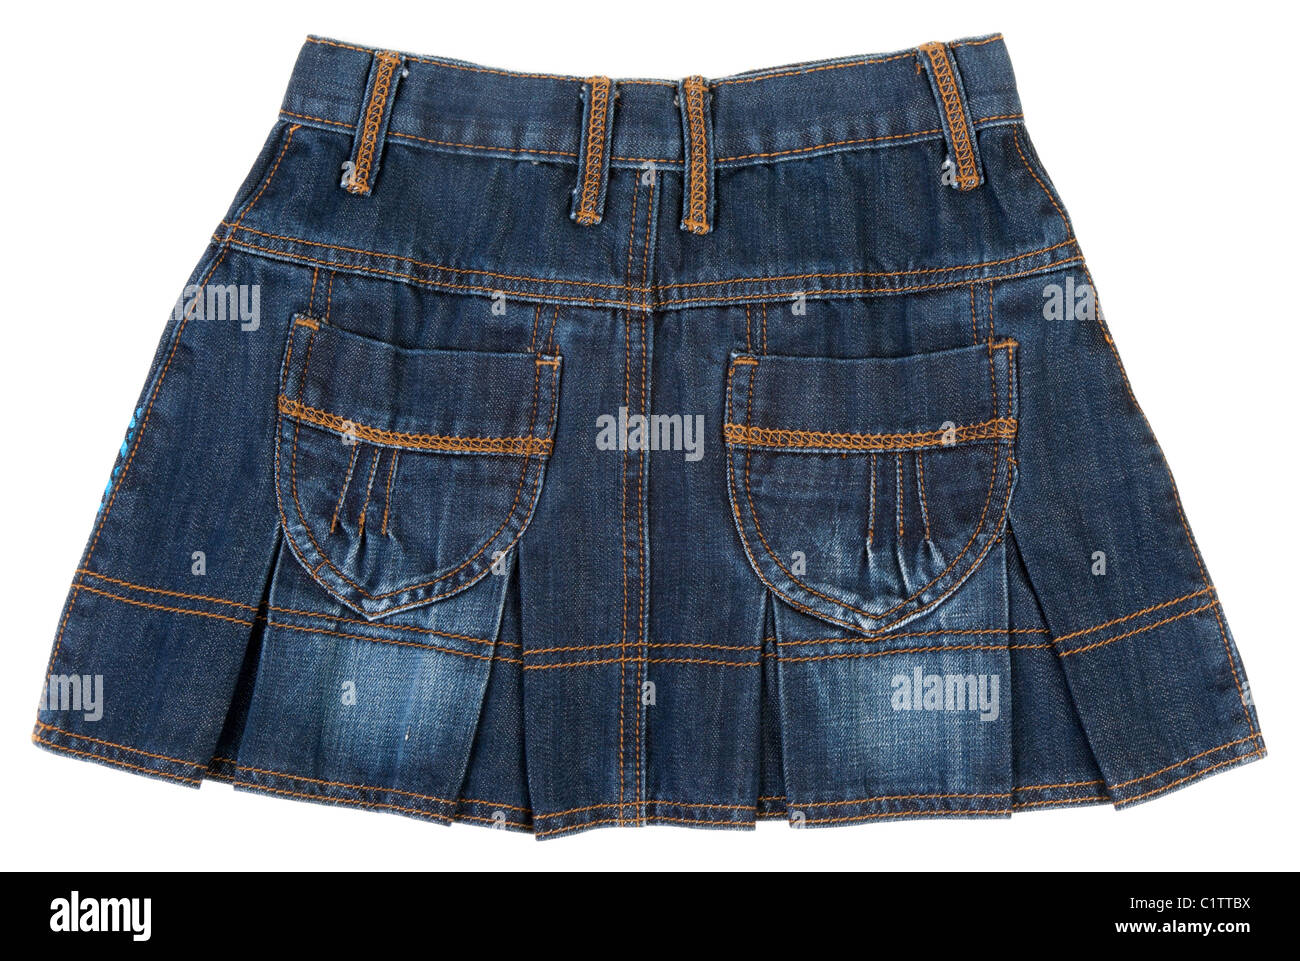 Jeans mini skirt insulated on white background - Stock Image